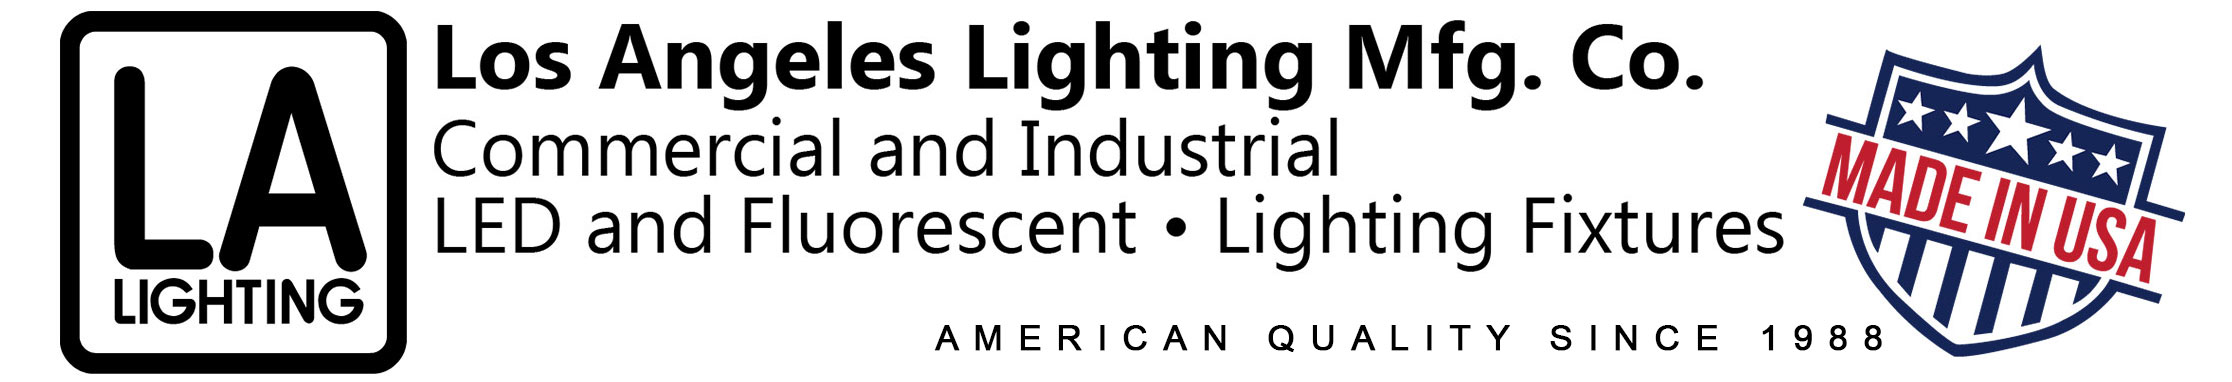 Los Angeles Lighting Manufacturing Company L A